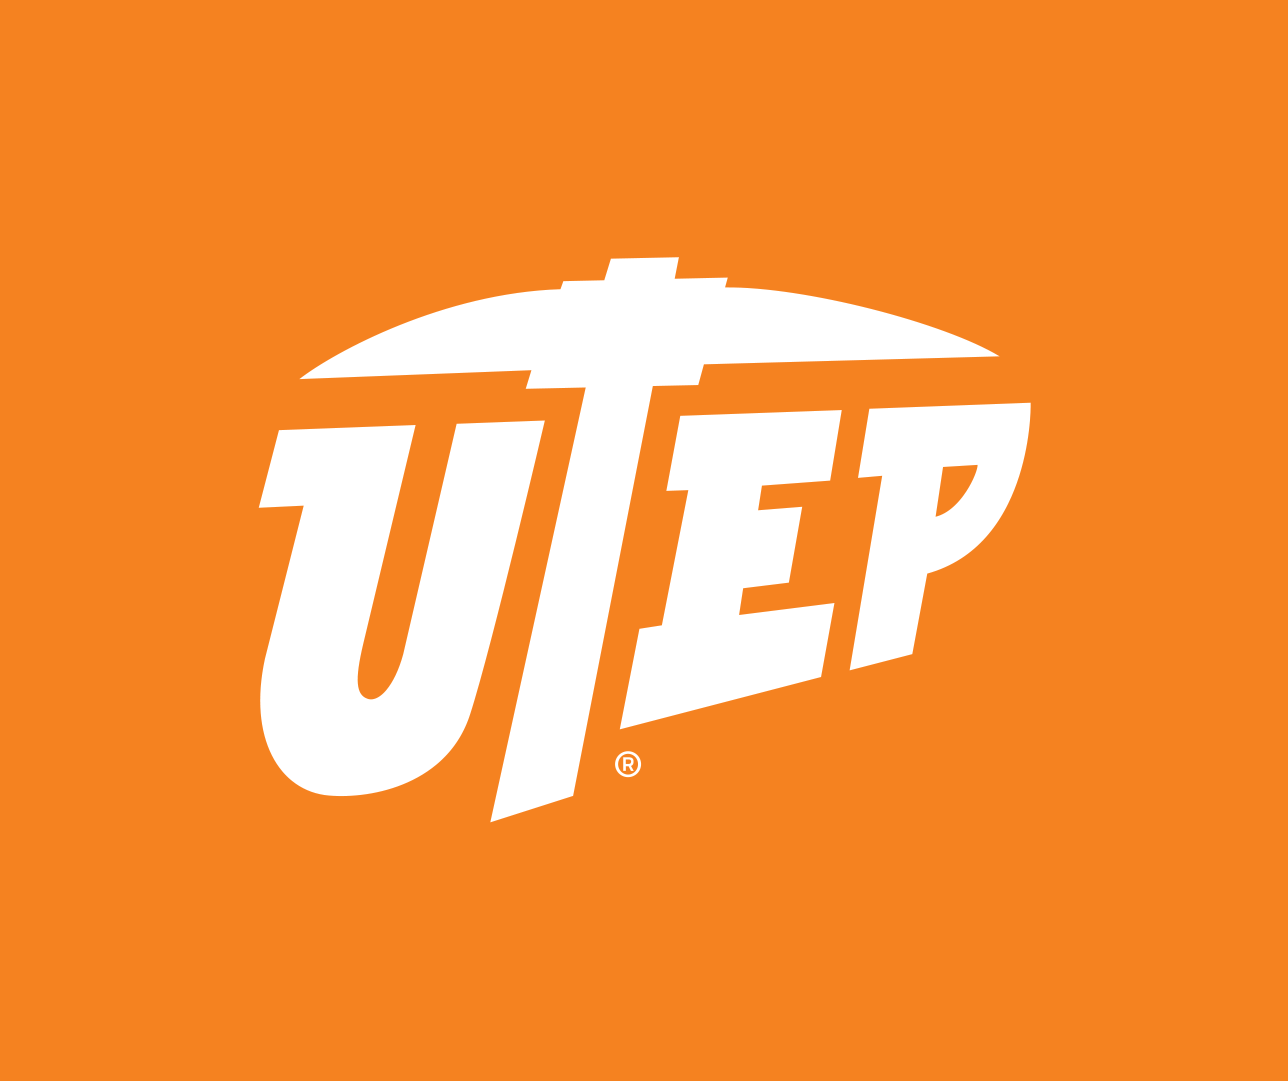 Utep The University Of Texas At El Paso